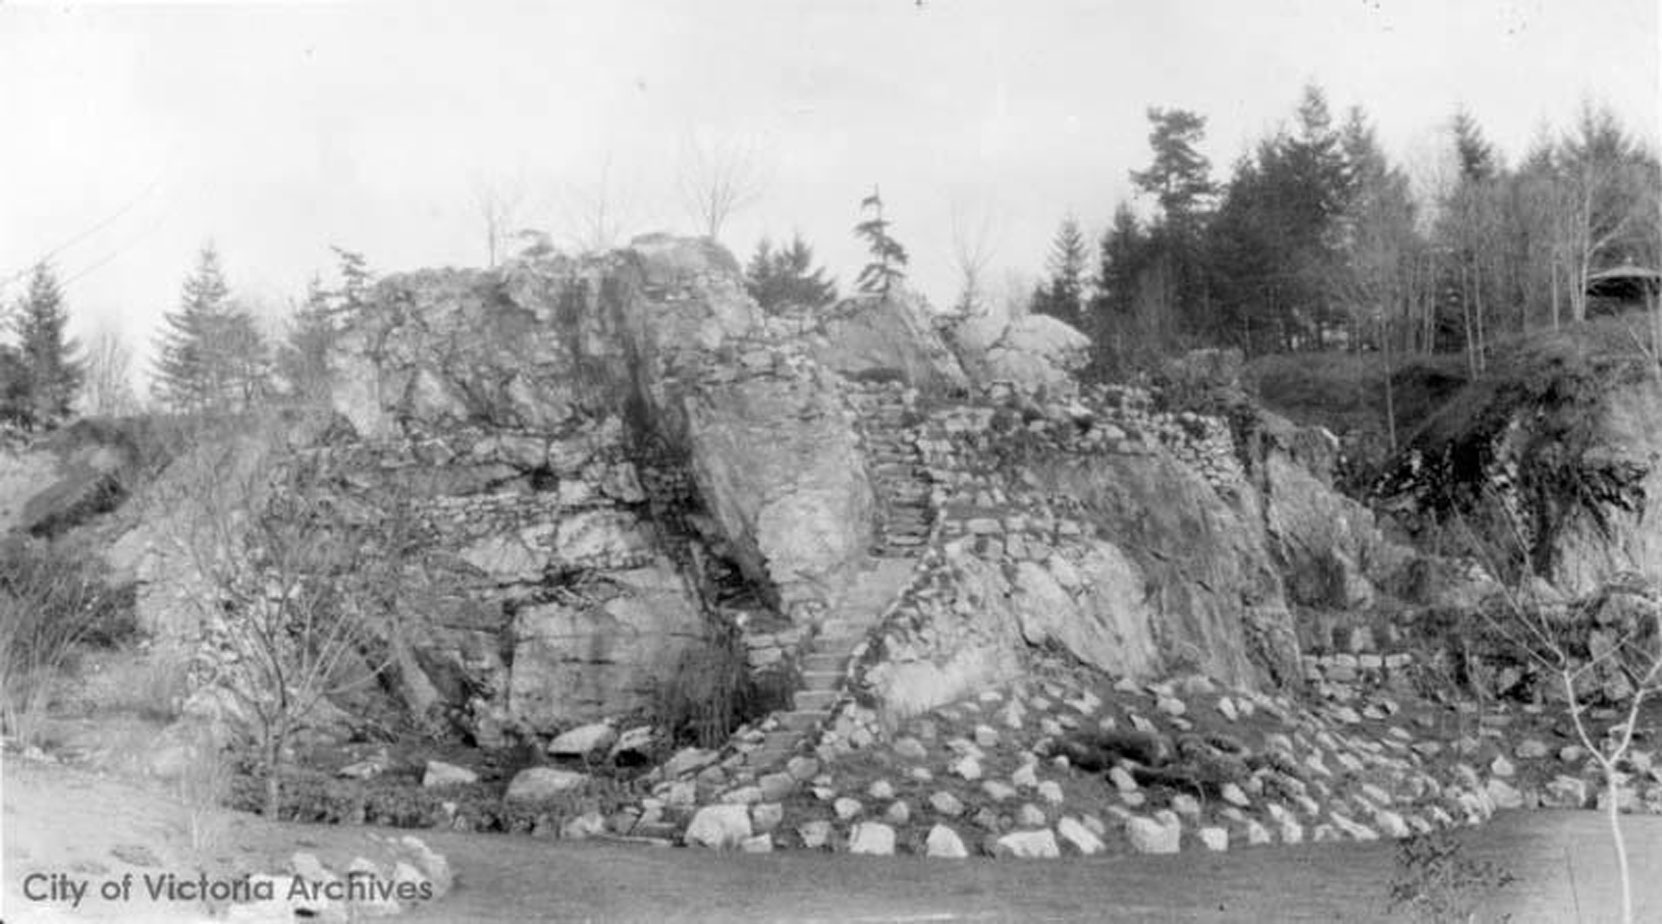 The Mound from the west side of the Sunken Garden, circa 1910. This section of the Sunken Garden was designed by Raoul Robillard. (City of Victoria Archives photo M05820)